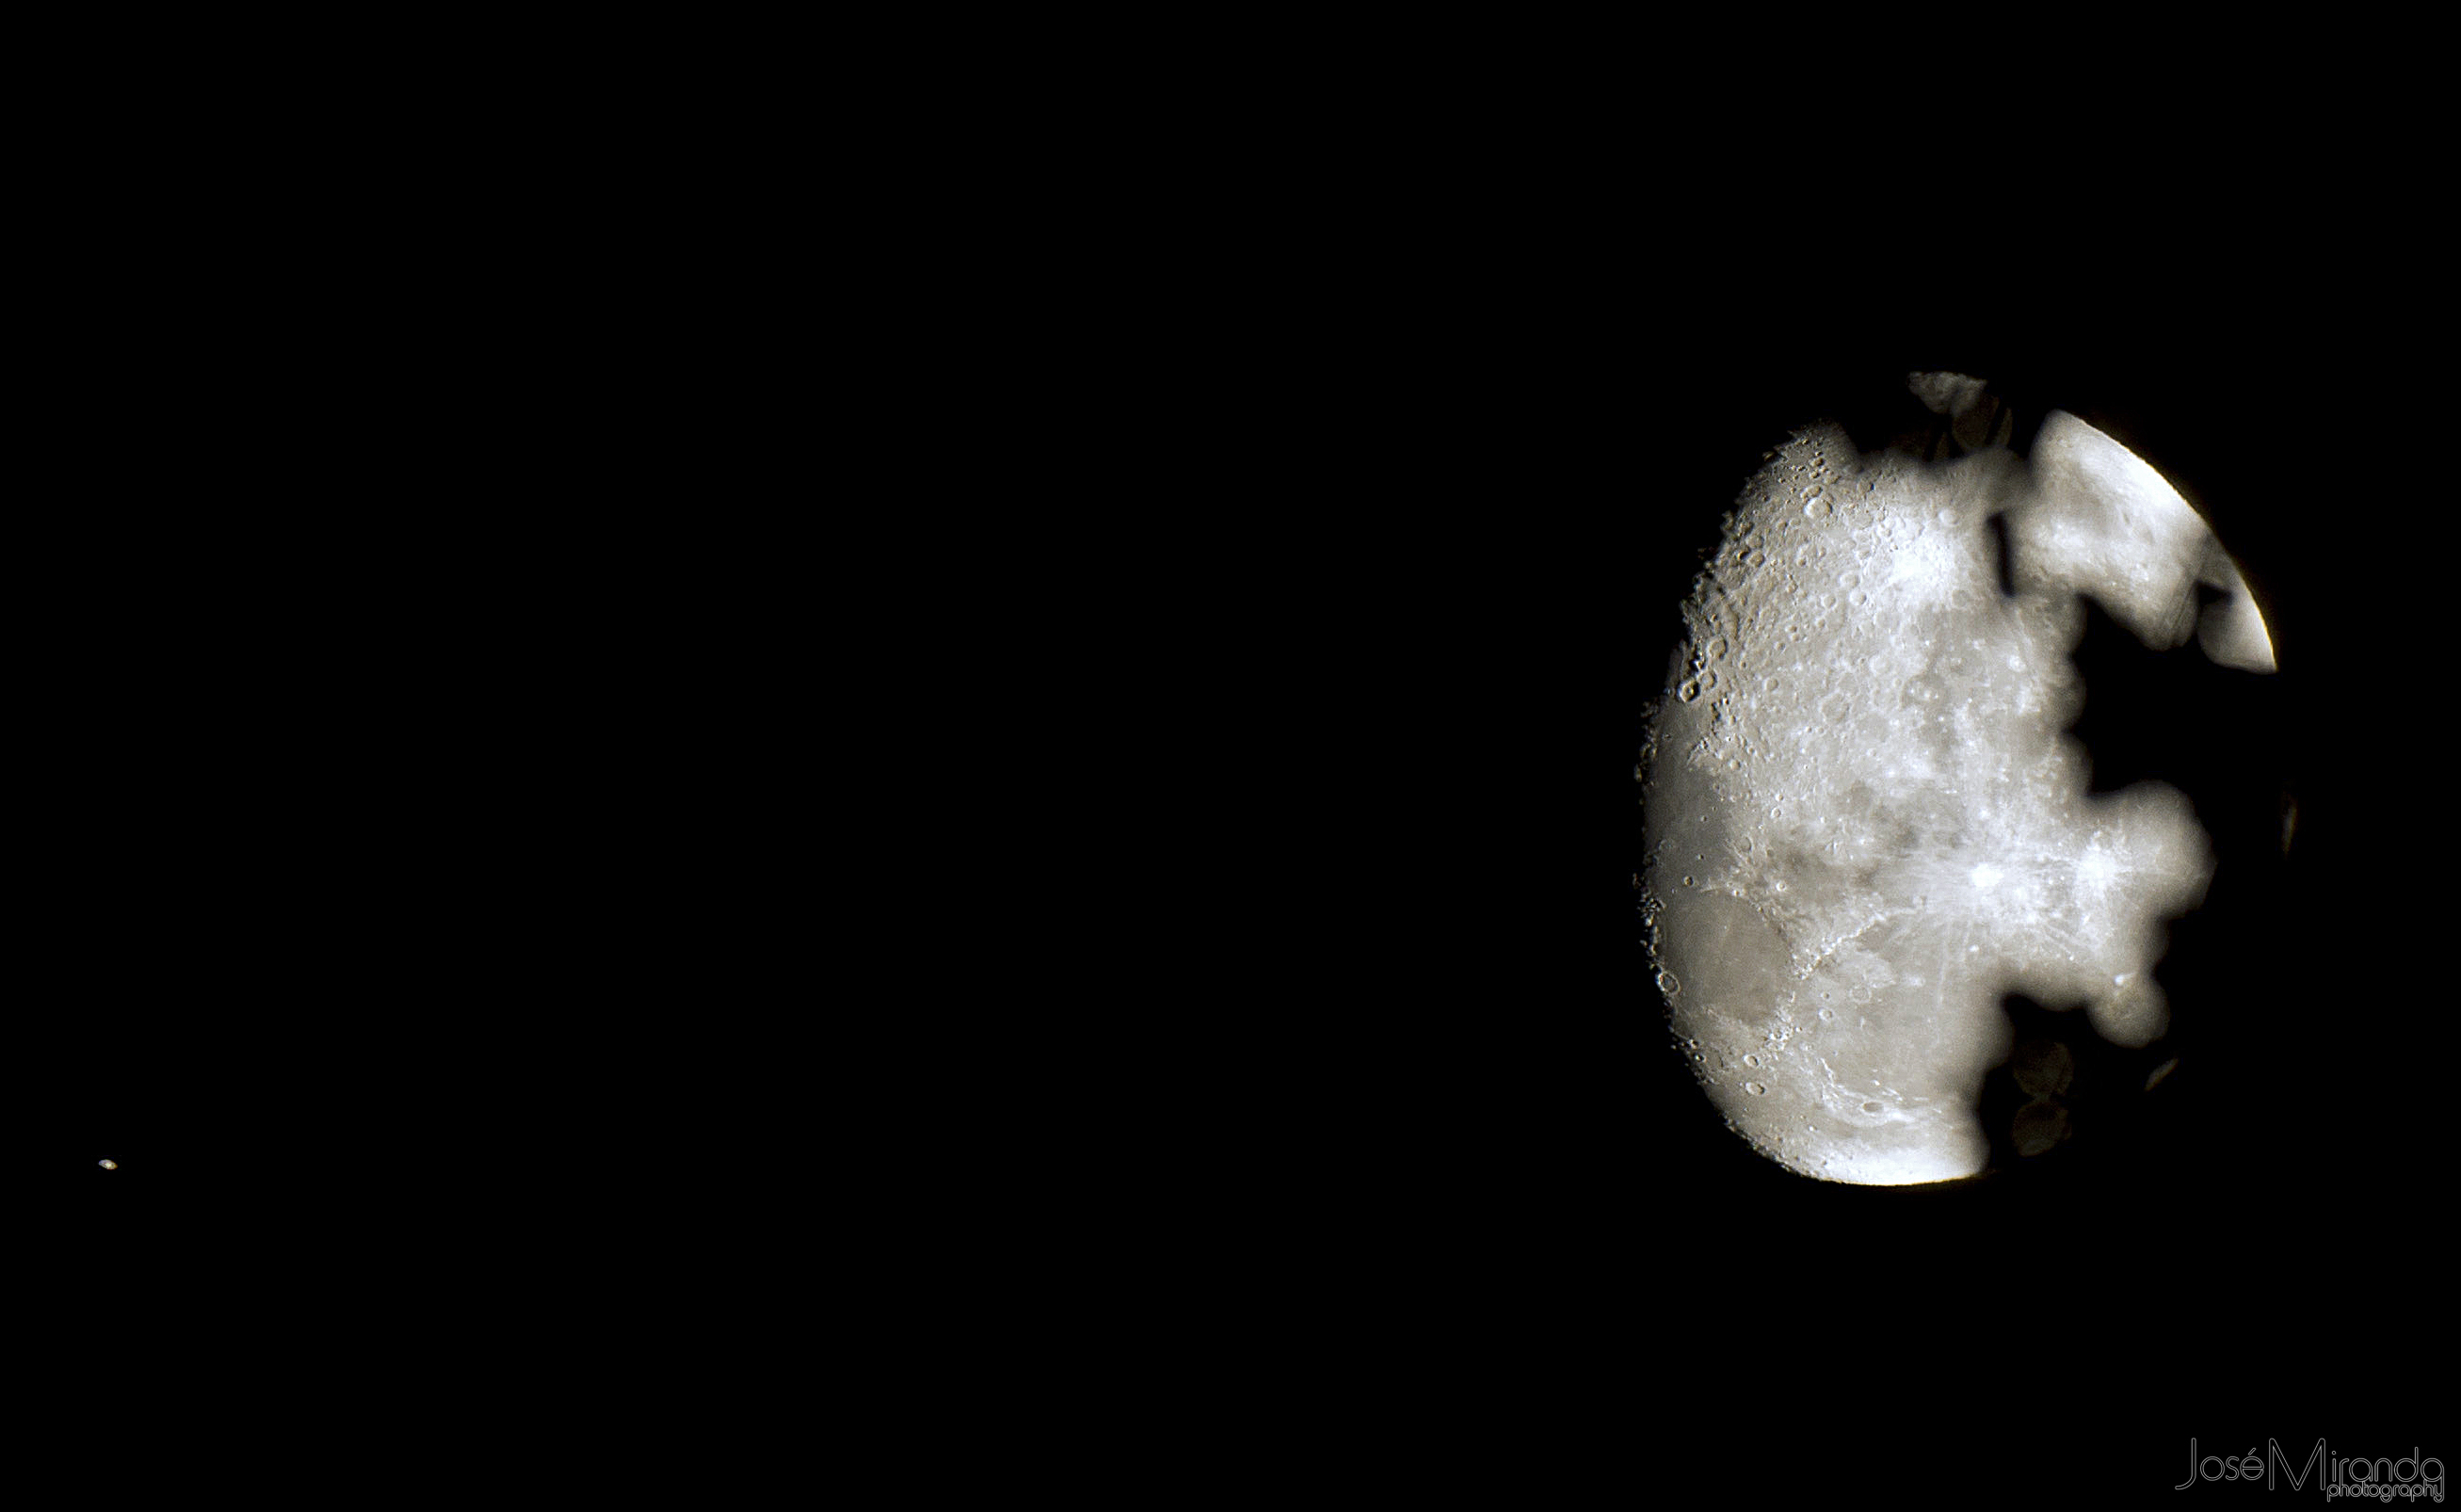 Conjunction of the Moon and Saturn, just clearing the tree tops